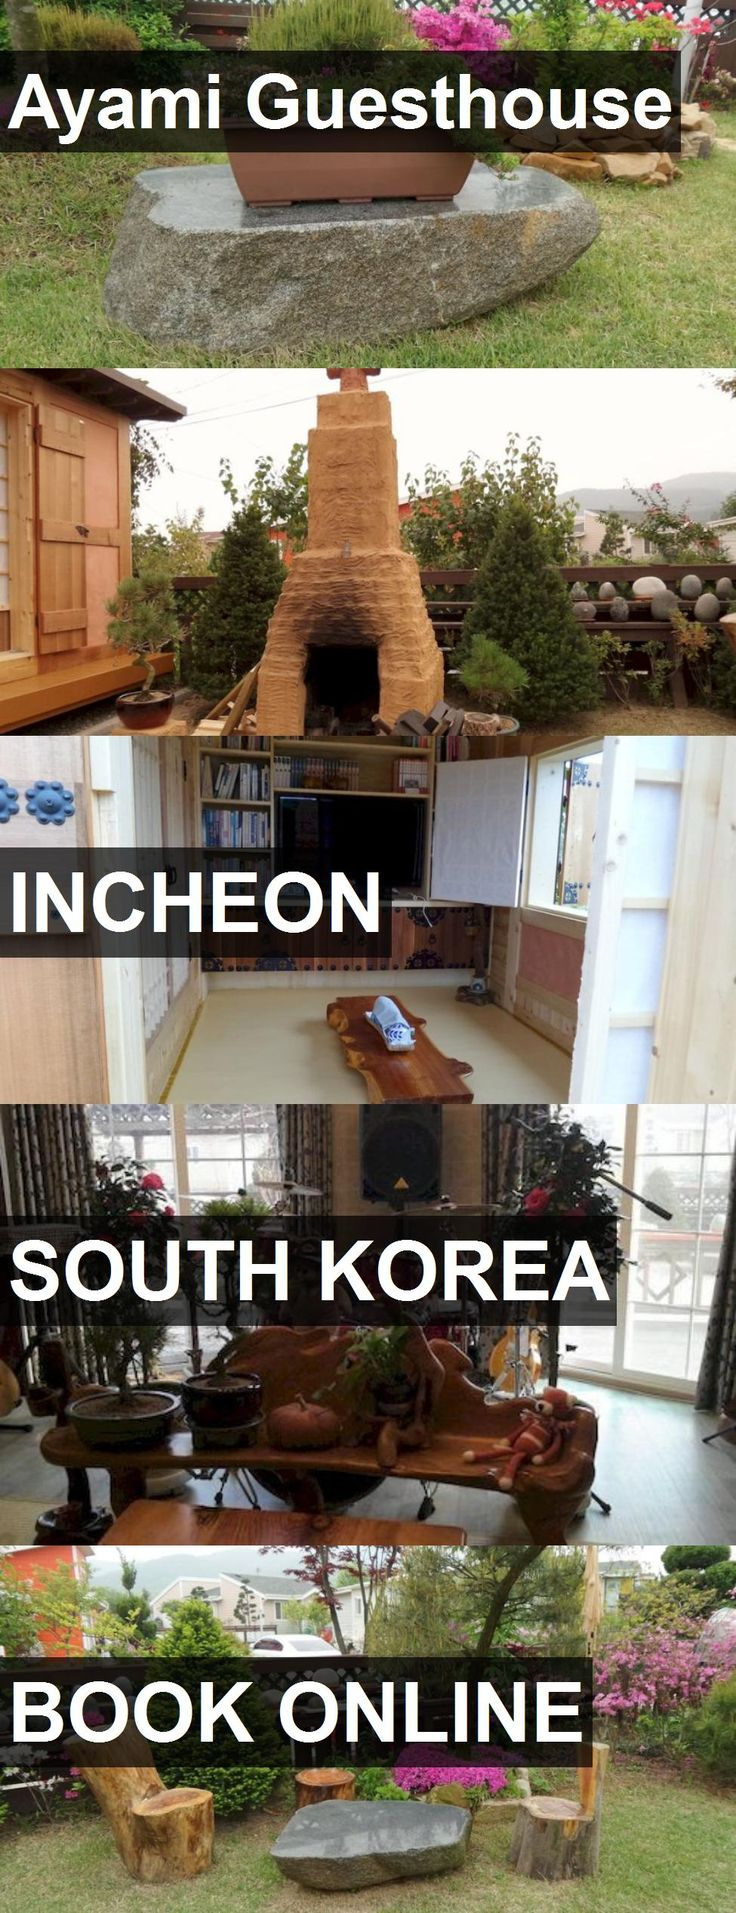 Hotel Ayami Guesthouse in Incheon, South Korea. For more information, photos, reviews and best prices please follow the link. #SouthKorea #Incheon #travel #vacation #hotel